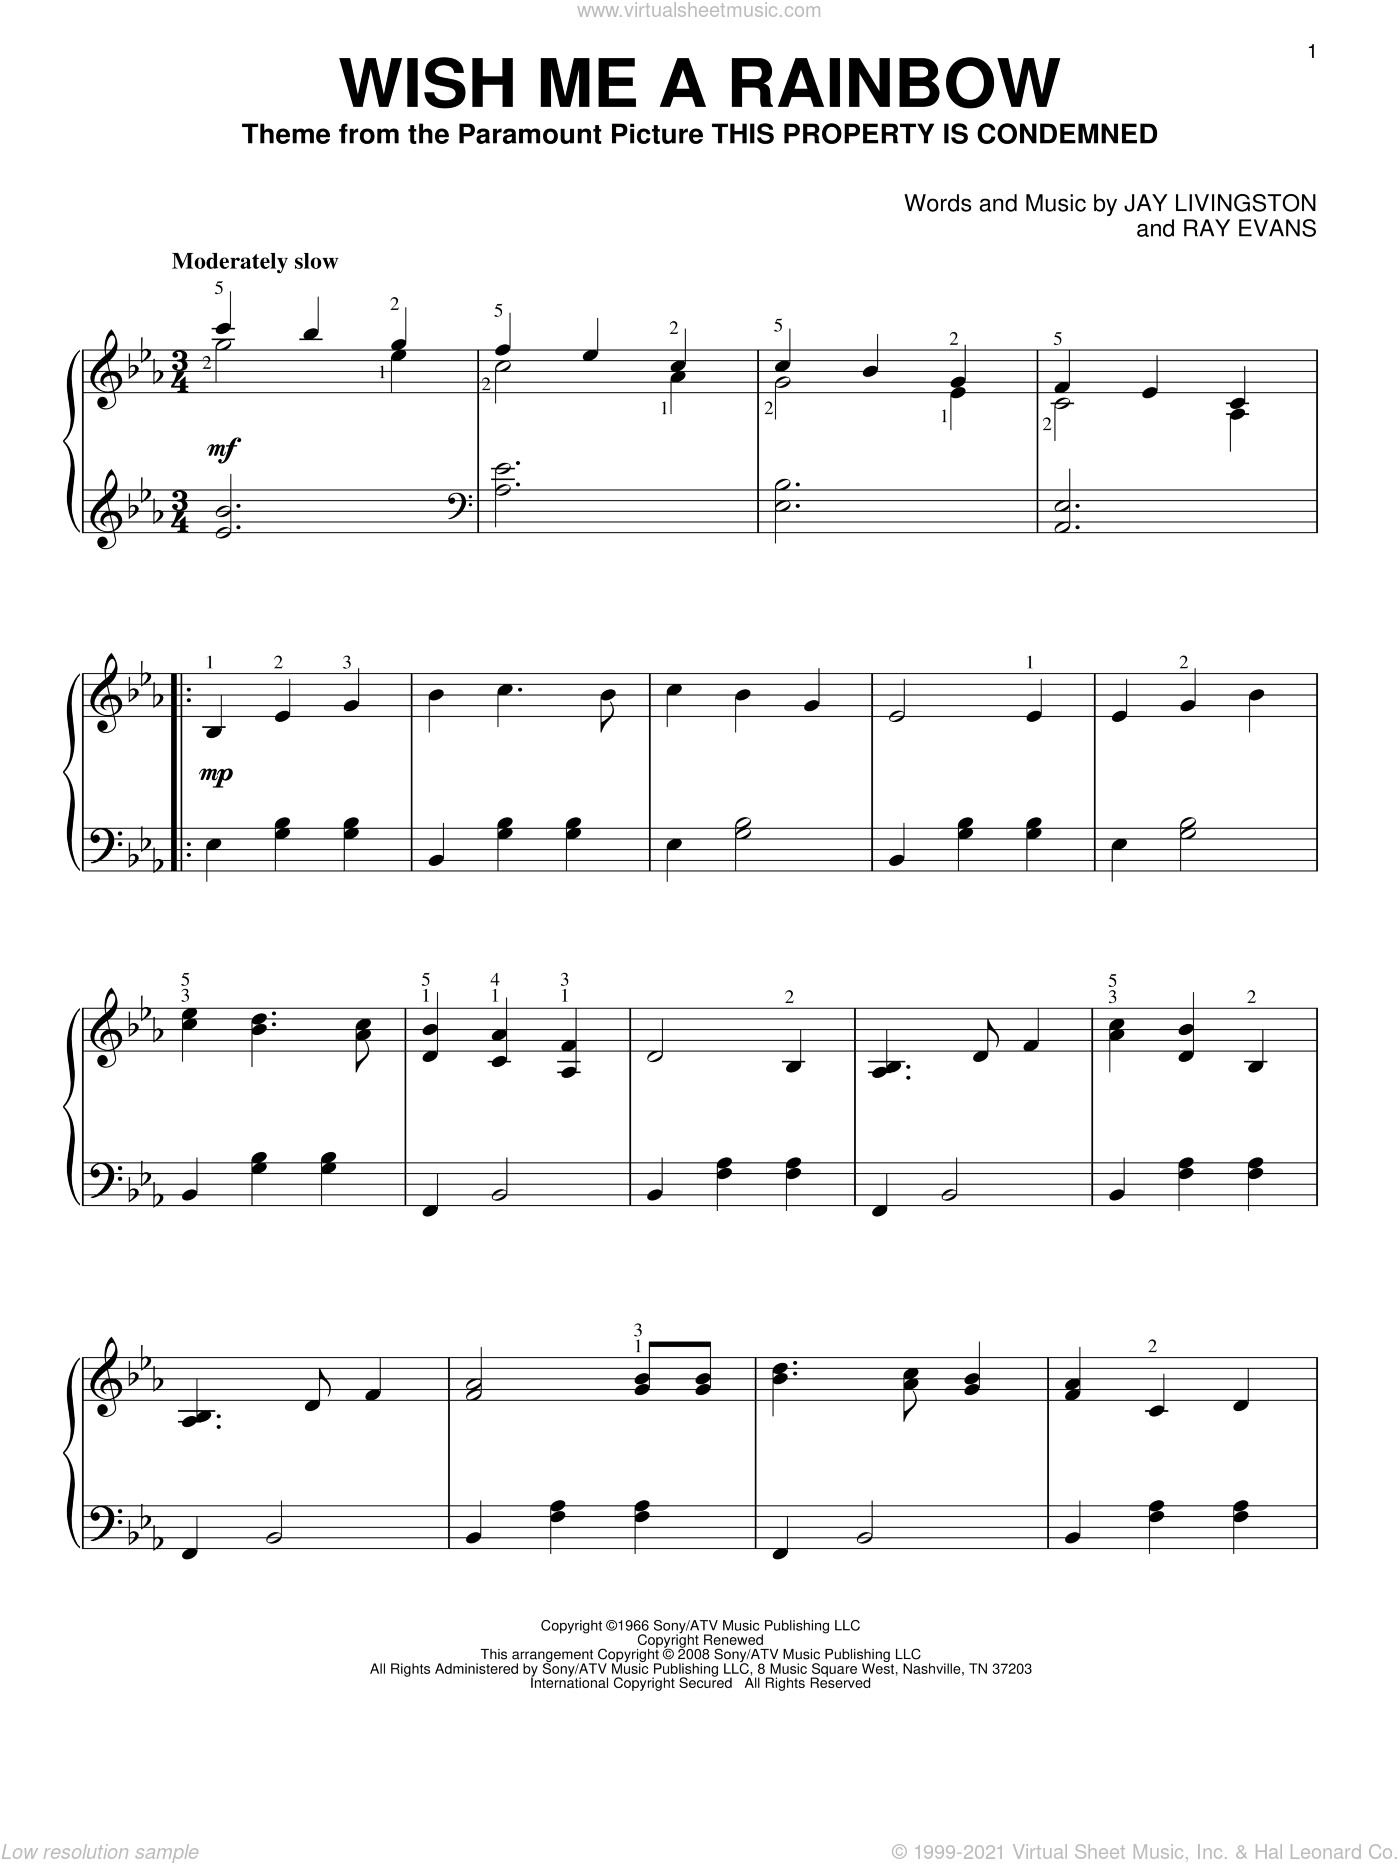 Wish Me A Rainbow sheet music for piano solo by Jay Livingston and Ray Evans, intermediate skill level